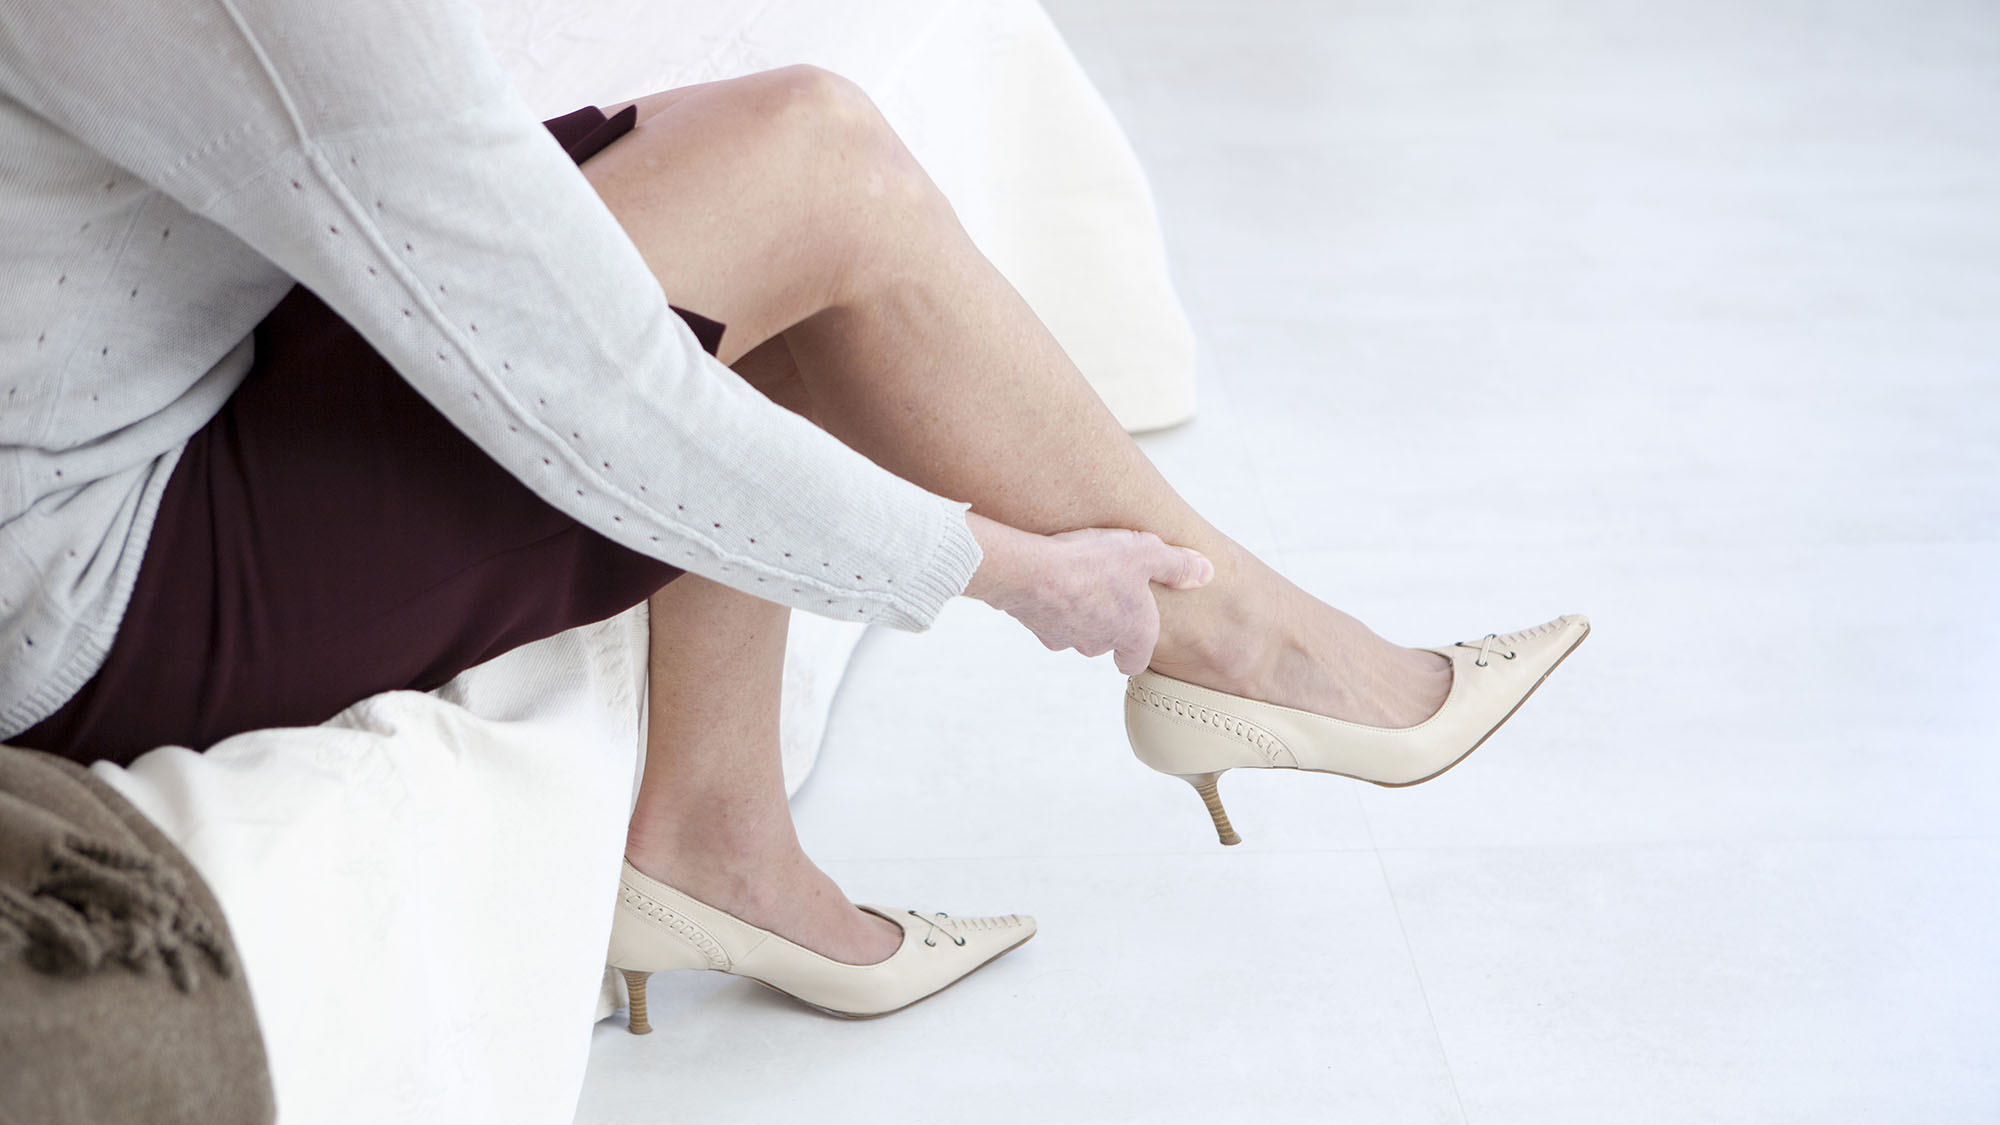 Why high heels can lead to knee replacements